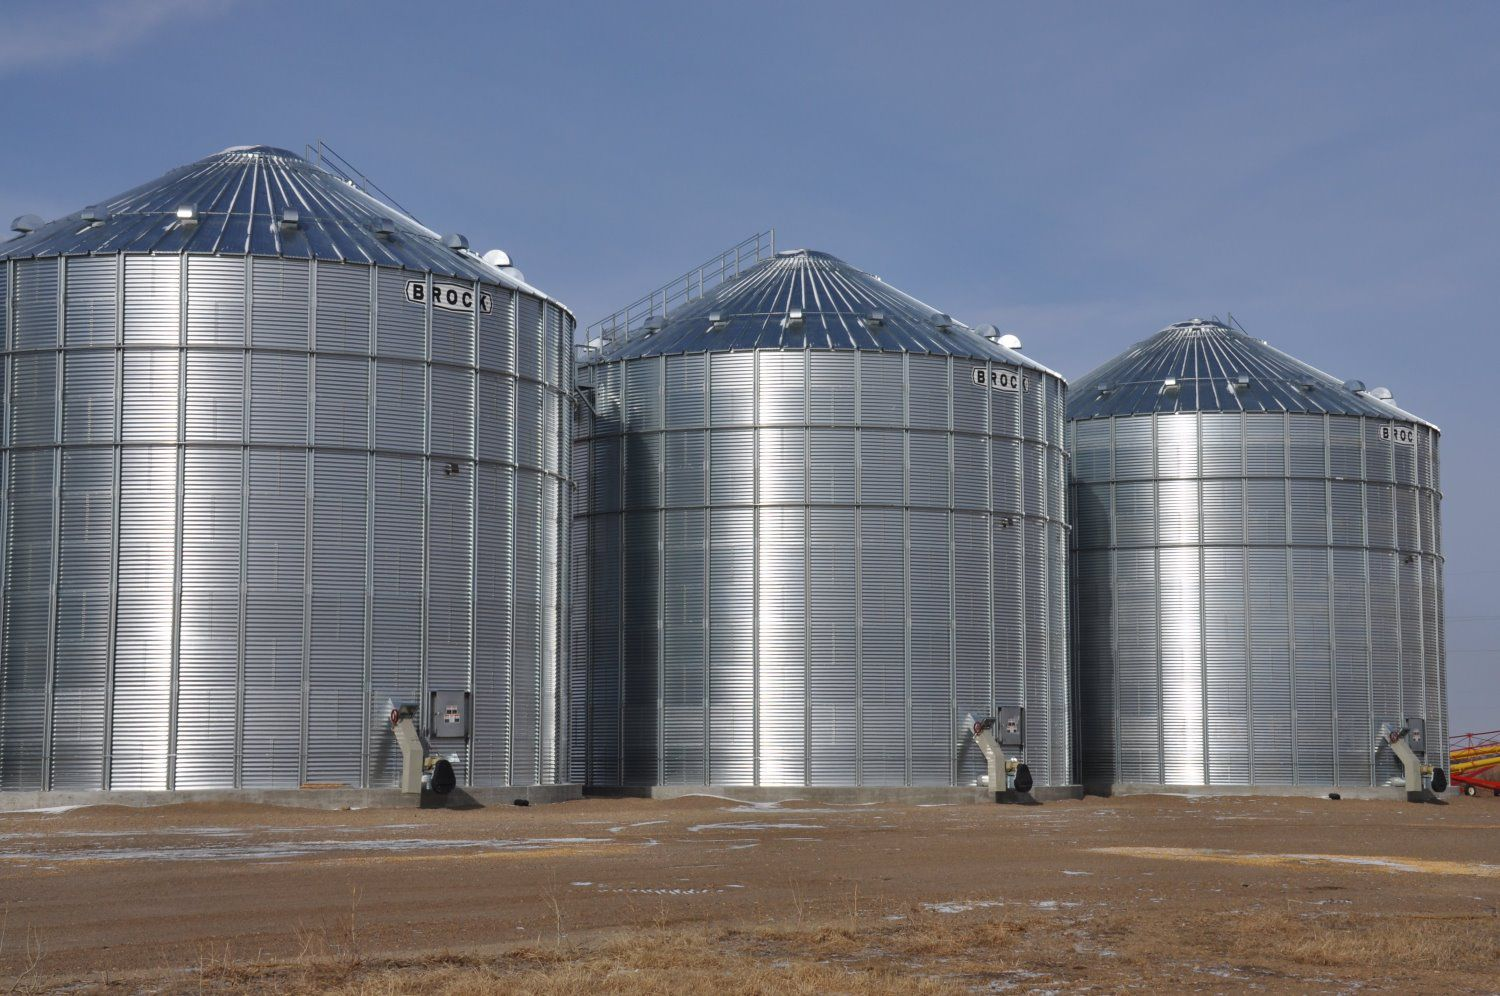 Brock Grain and Feed Systems - Donlin Building